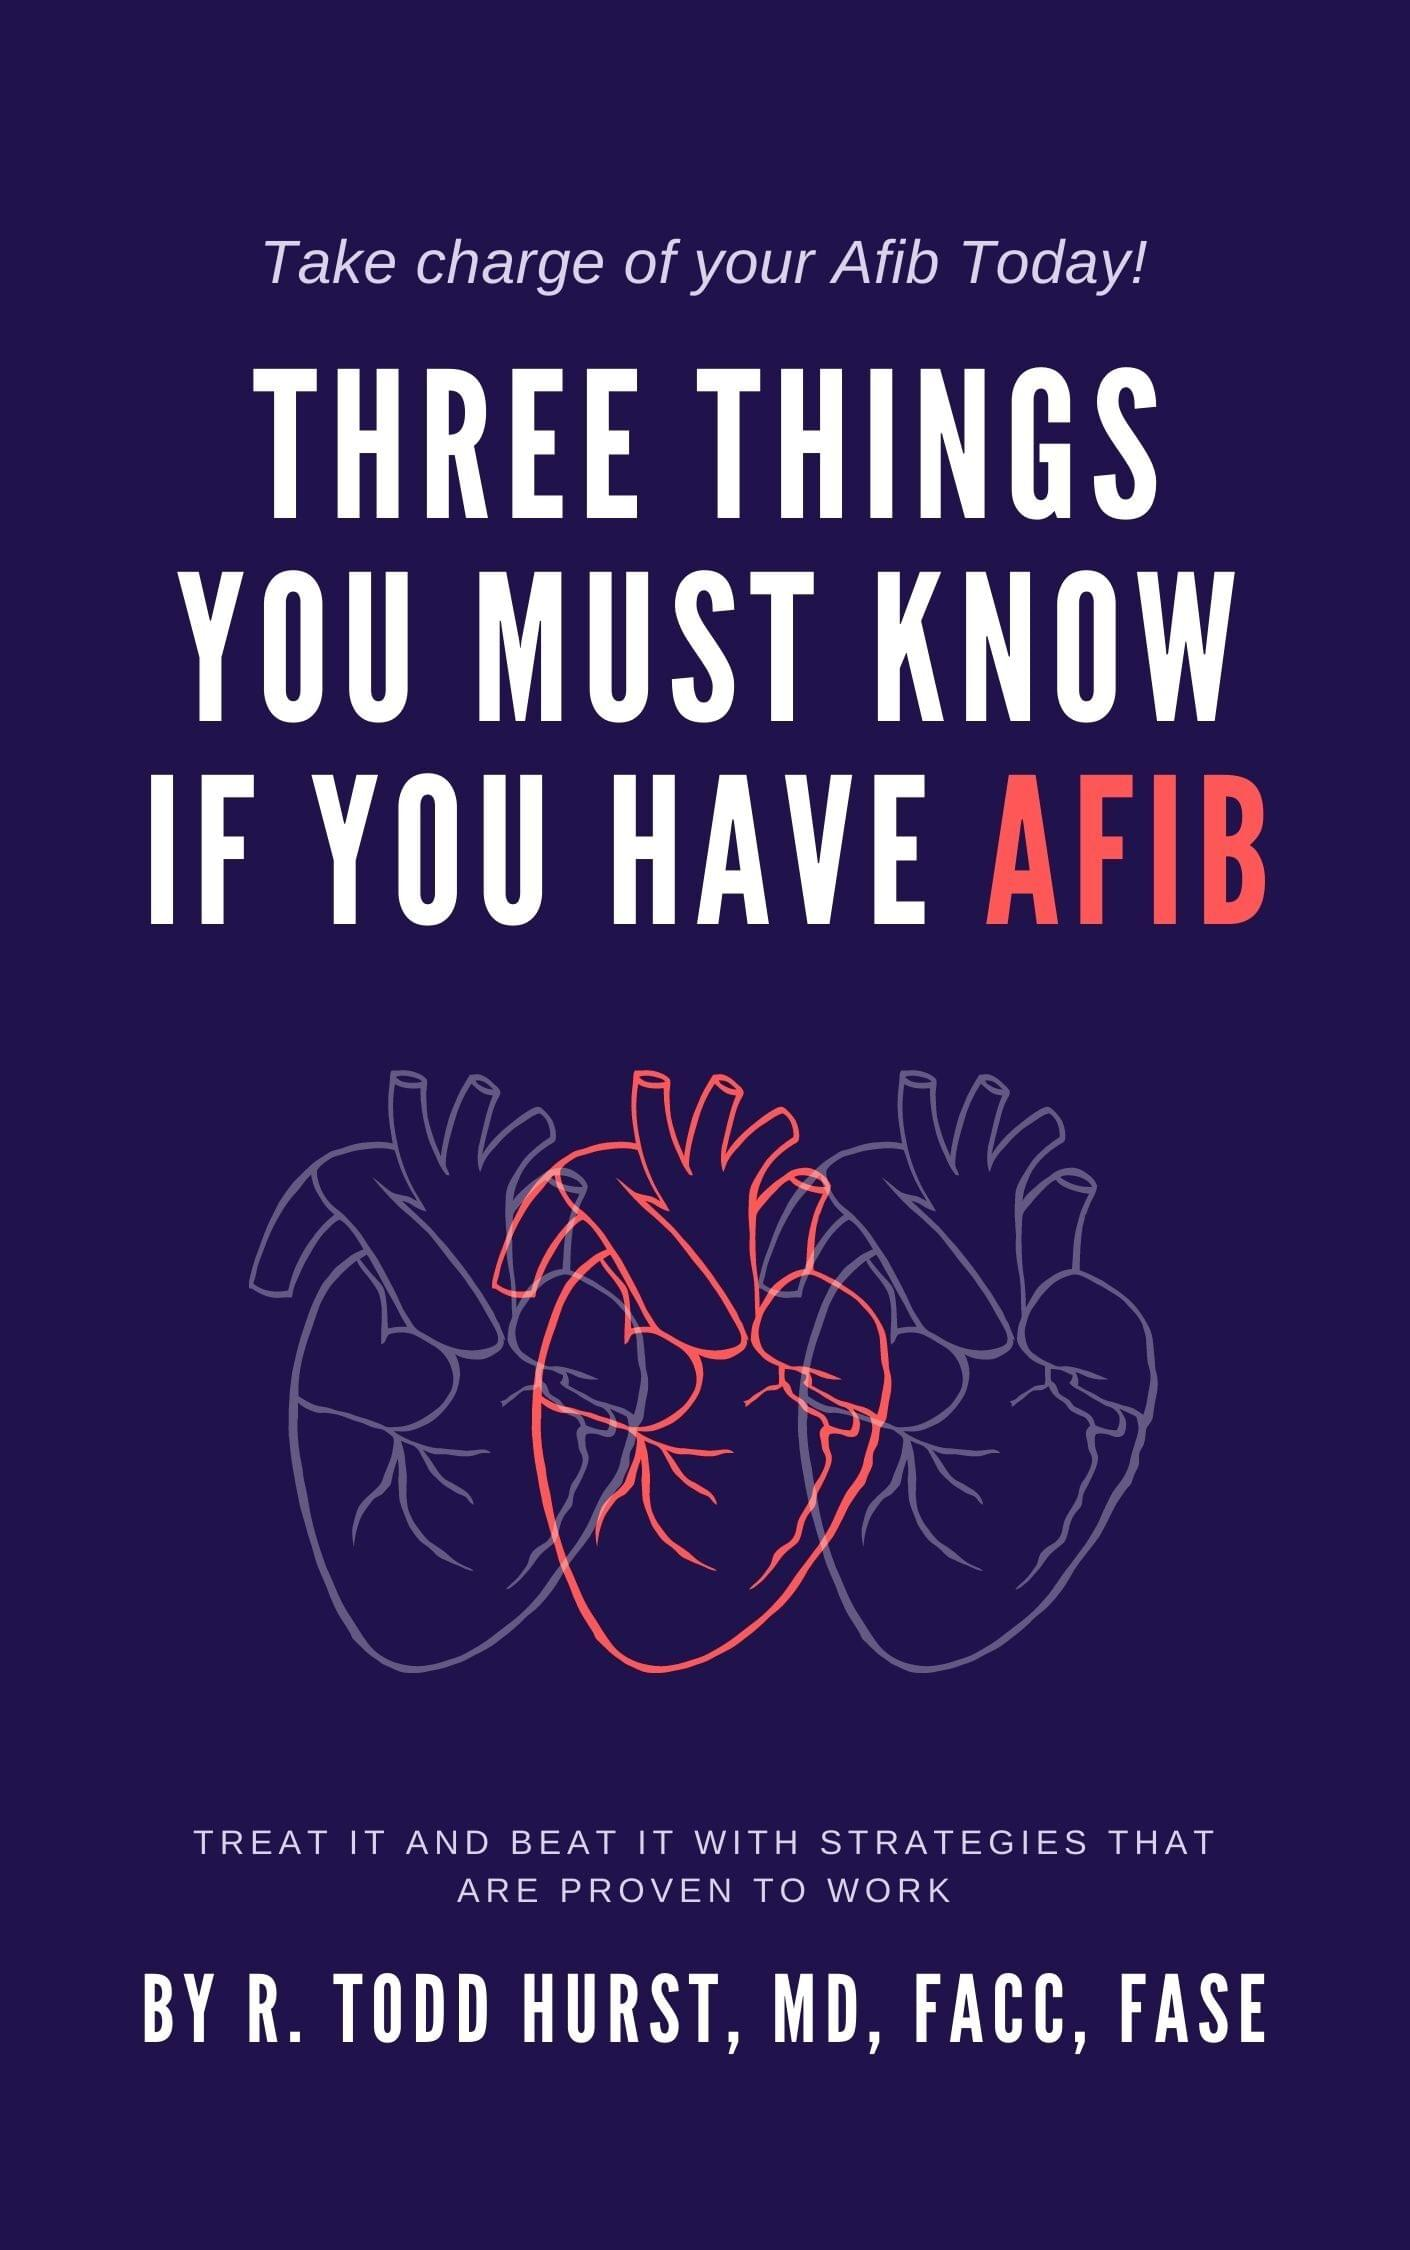 Facebook group for Beating Afib